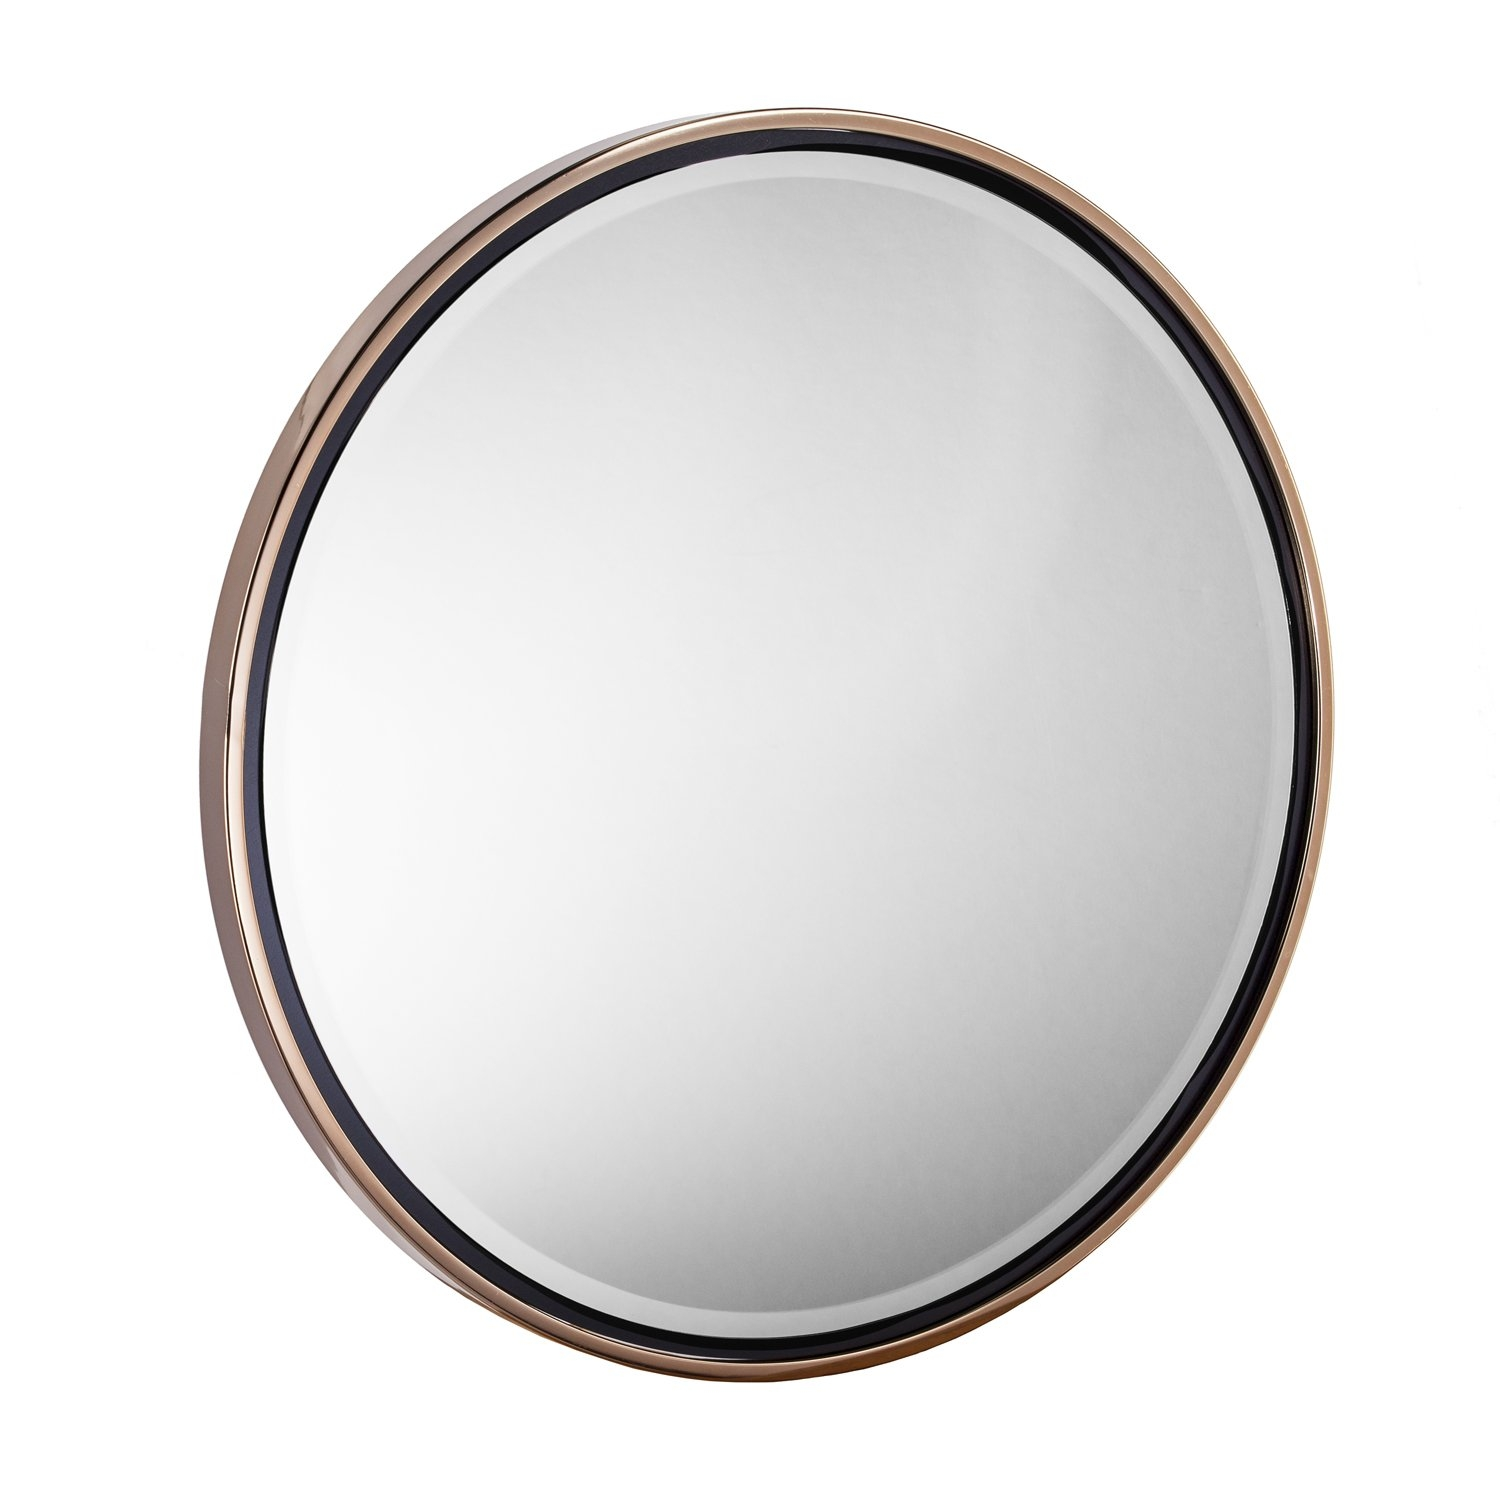 Willa Arlo Interiors Contemporary Round Wall Mirror Reviews Throughout Contemporary Round Mirror (View 6 of 15)